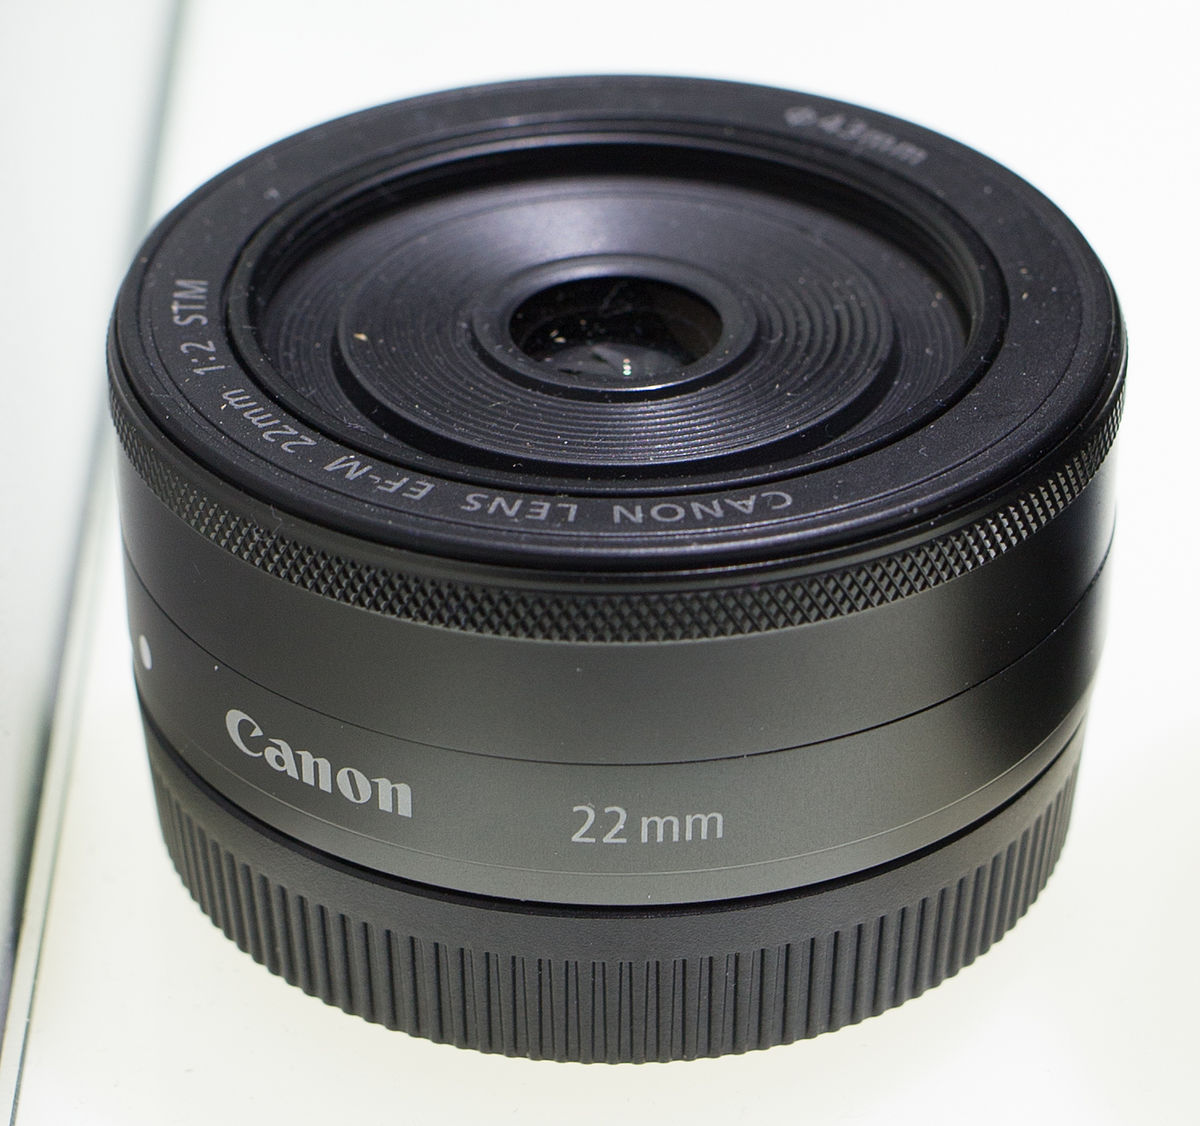 Canon 22mm f/2 STM Review - Ken Rockwell